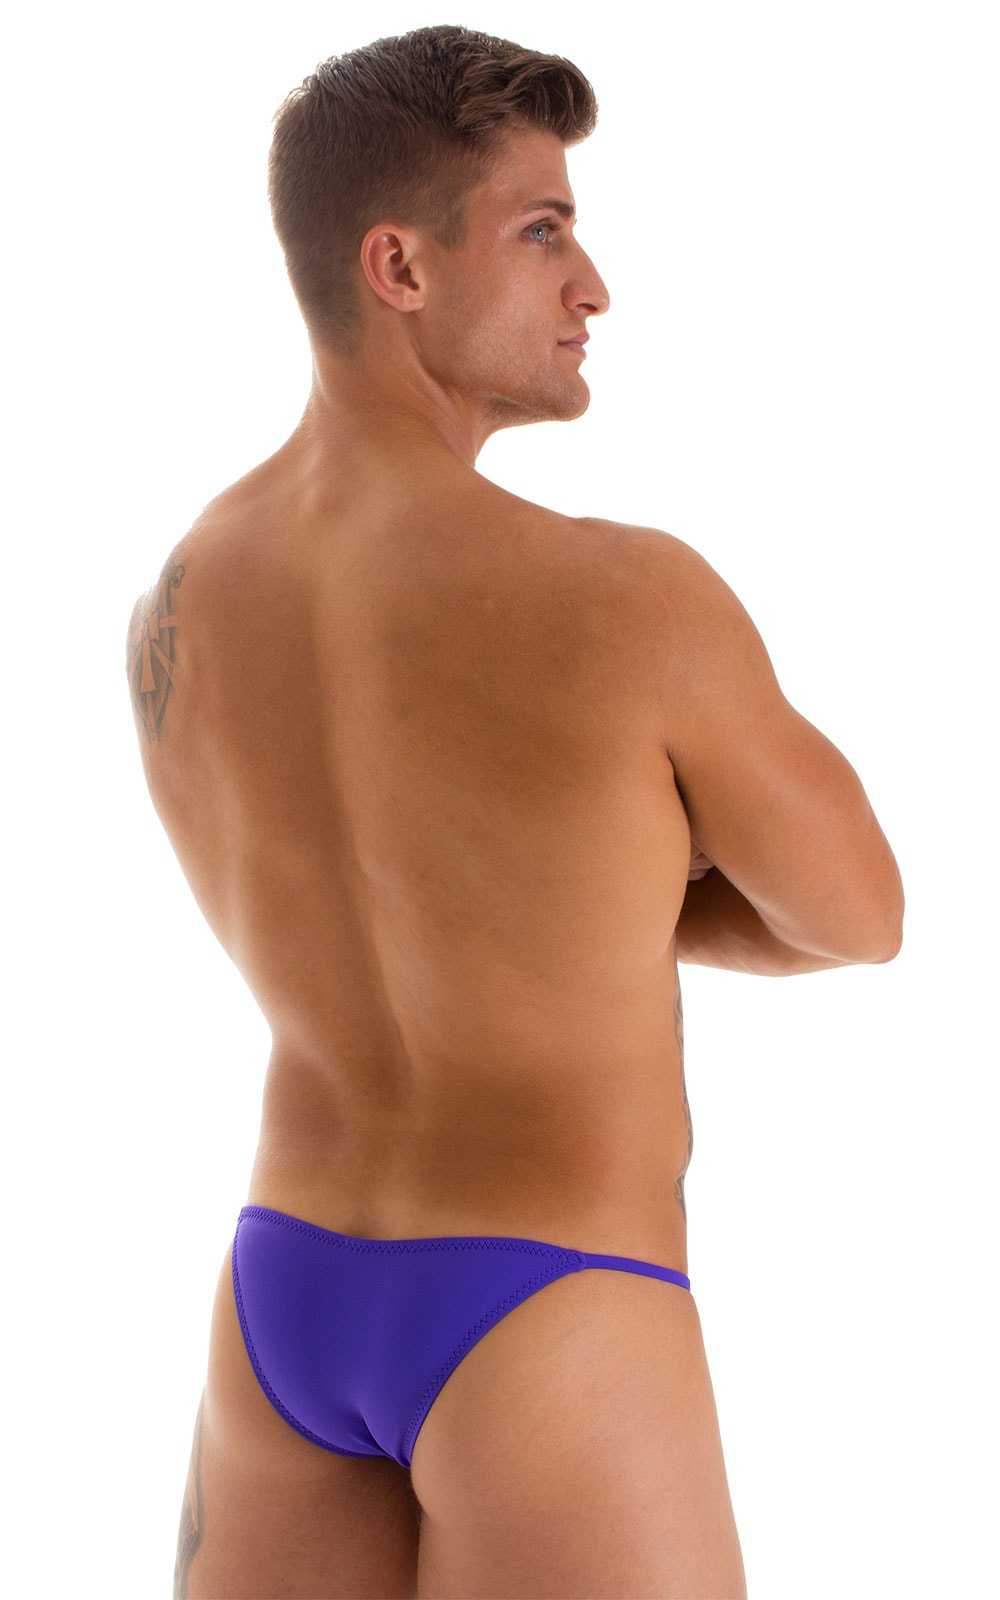 Stuffit Pouch Half Back Tanning Swimsuit in Indaco 2